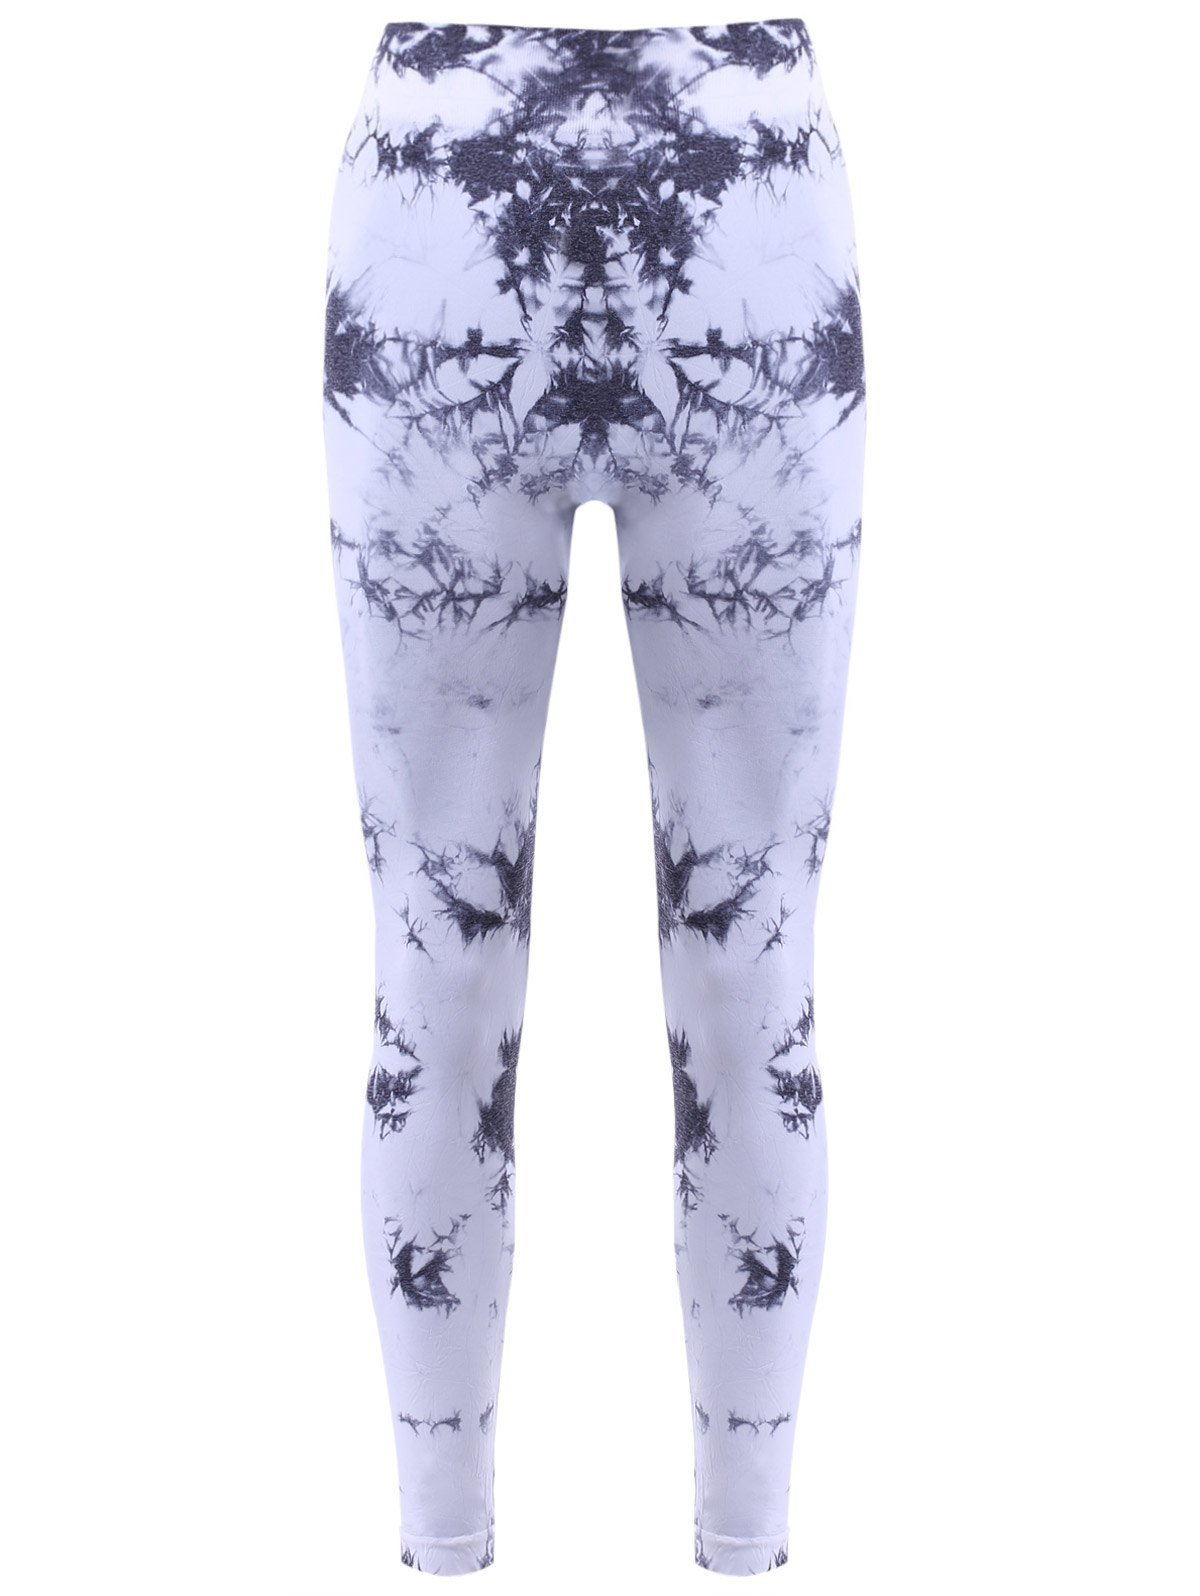 Elastic Waist Oli Printed Women's Sports Leggings - WHITE/BLACK L